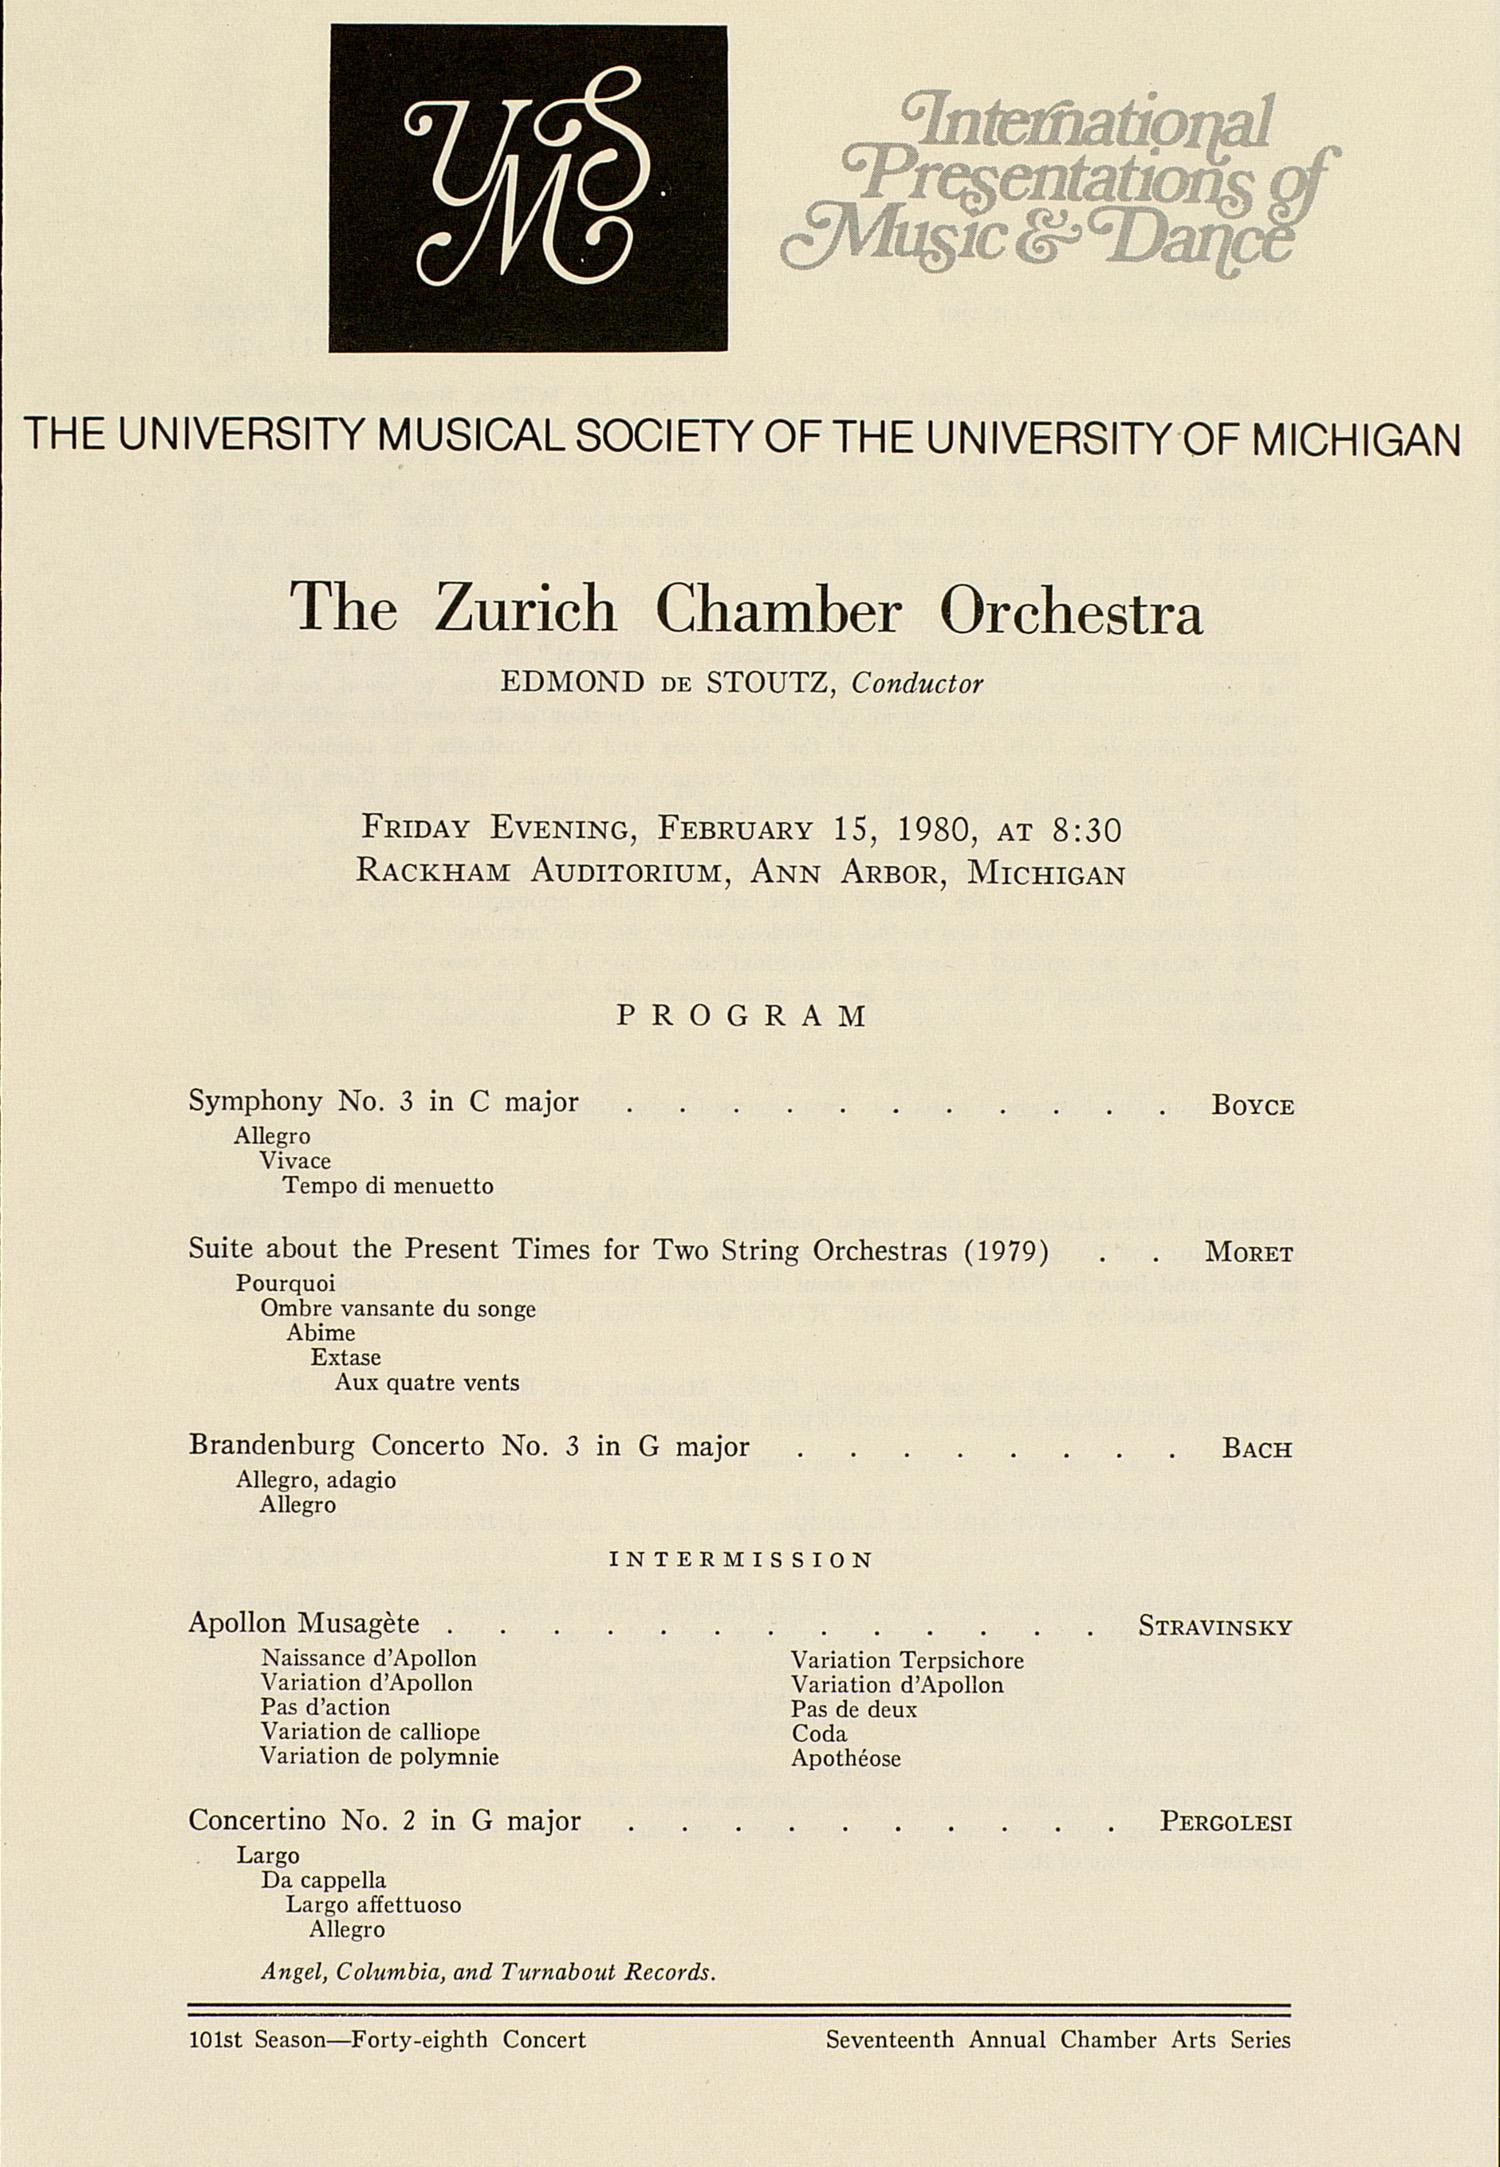 UMS Concert Program, February 15, 1980: International Presentations Of Music & Dance -- The Zurich Chamber Orchestra image